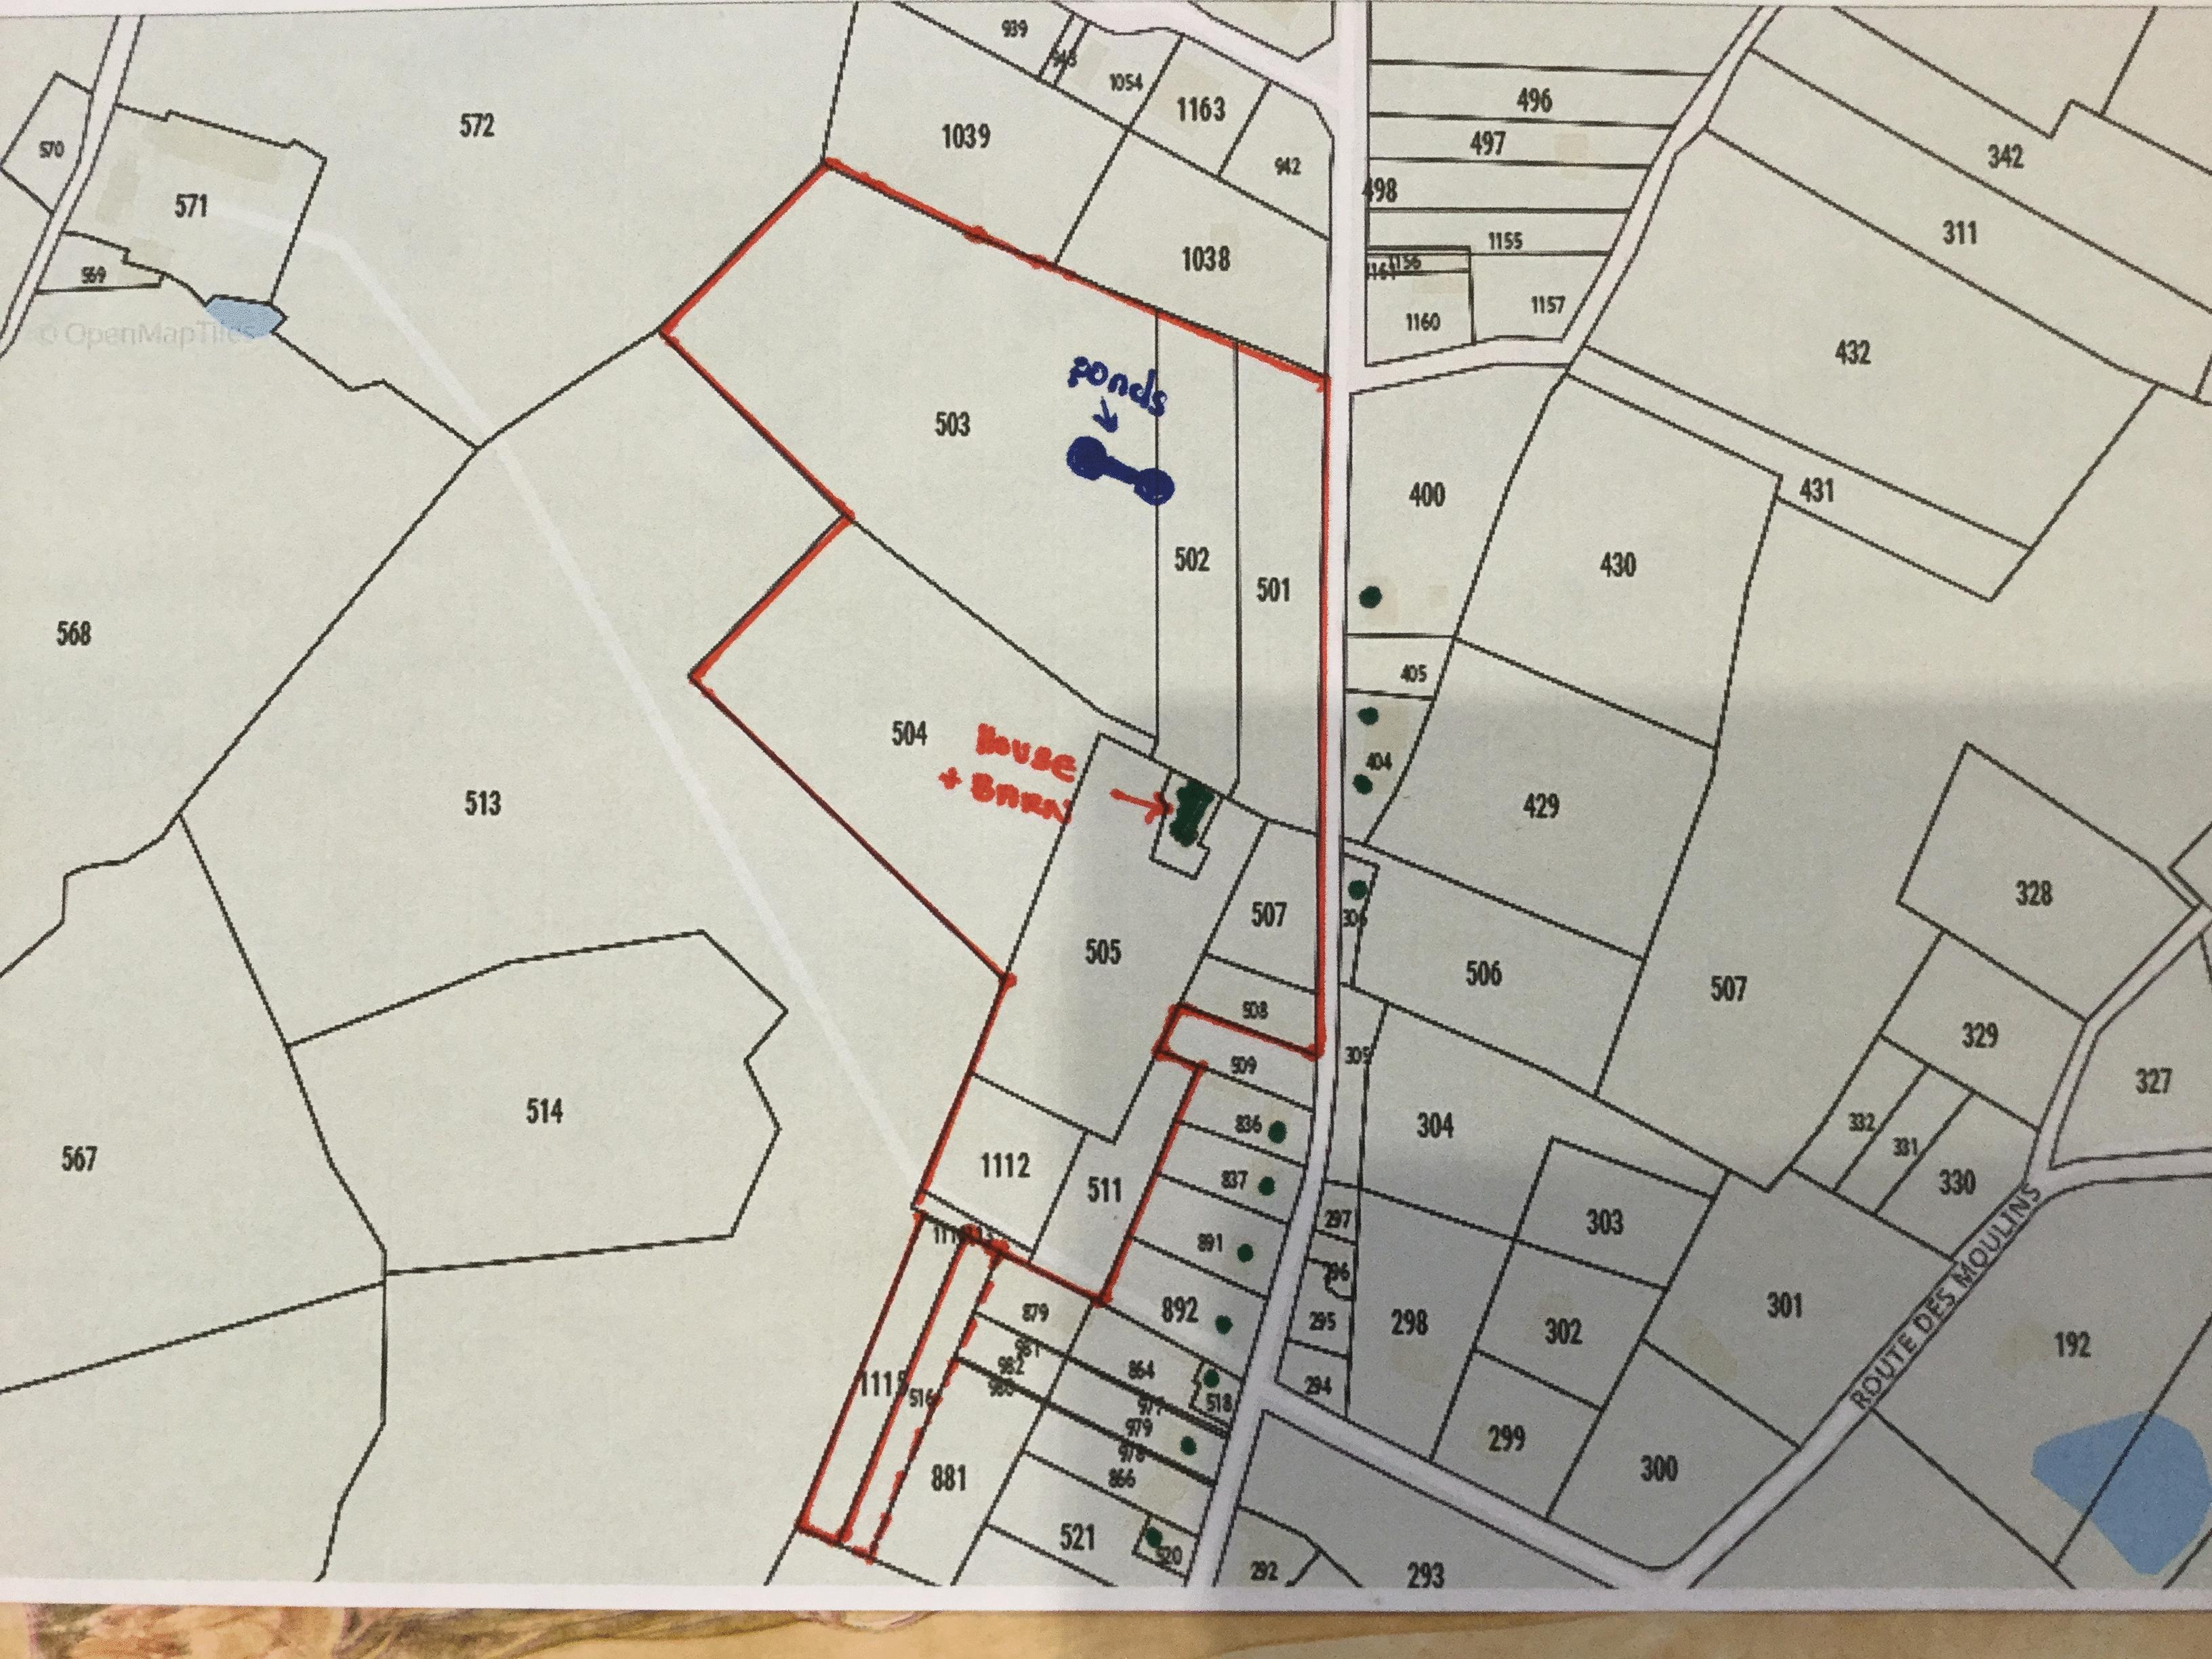 Cadastral plan. The property is outlined in red. G